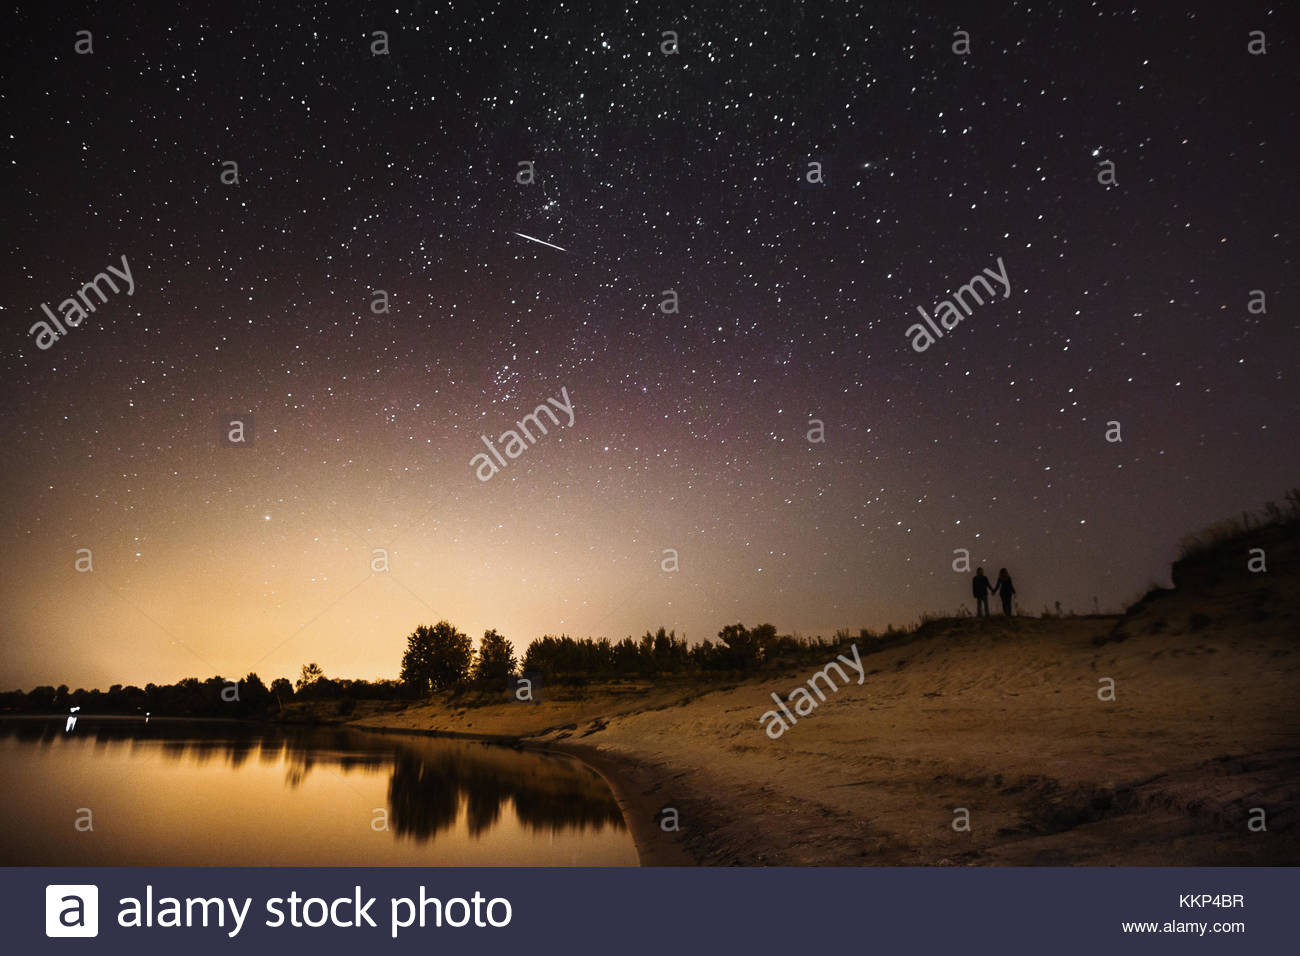 Silhouette Of Couple In Love Against The Backdrop Night Sky Beautiful